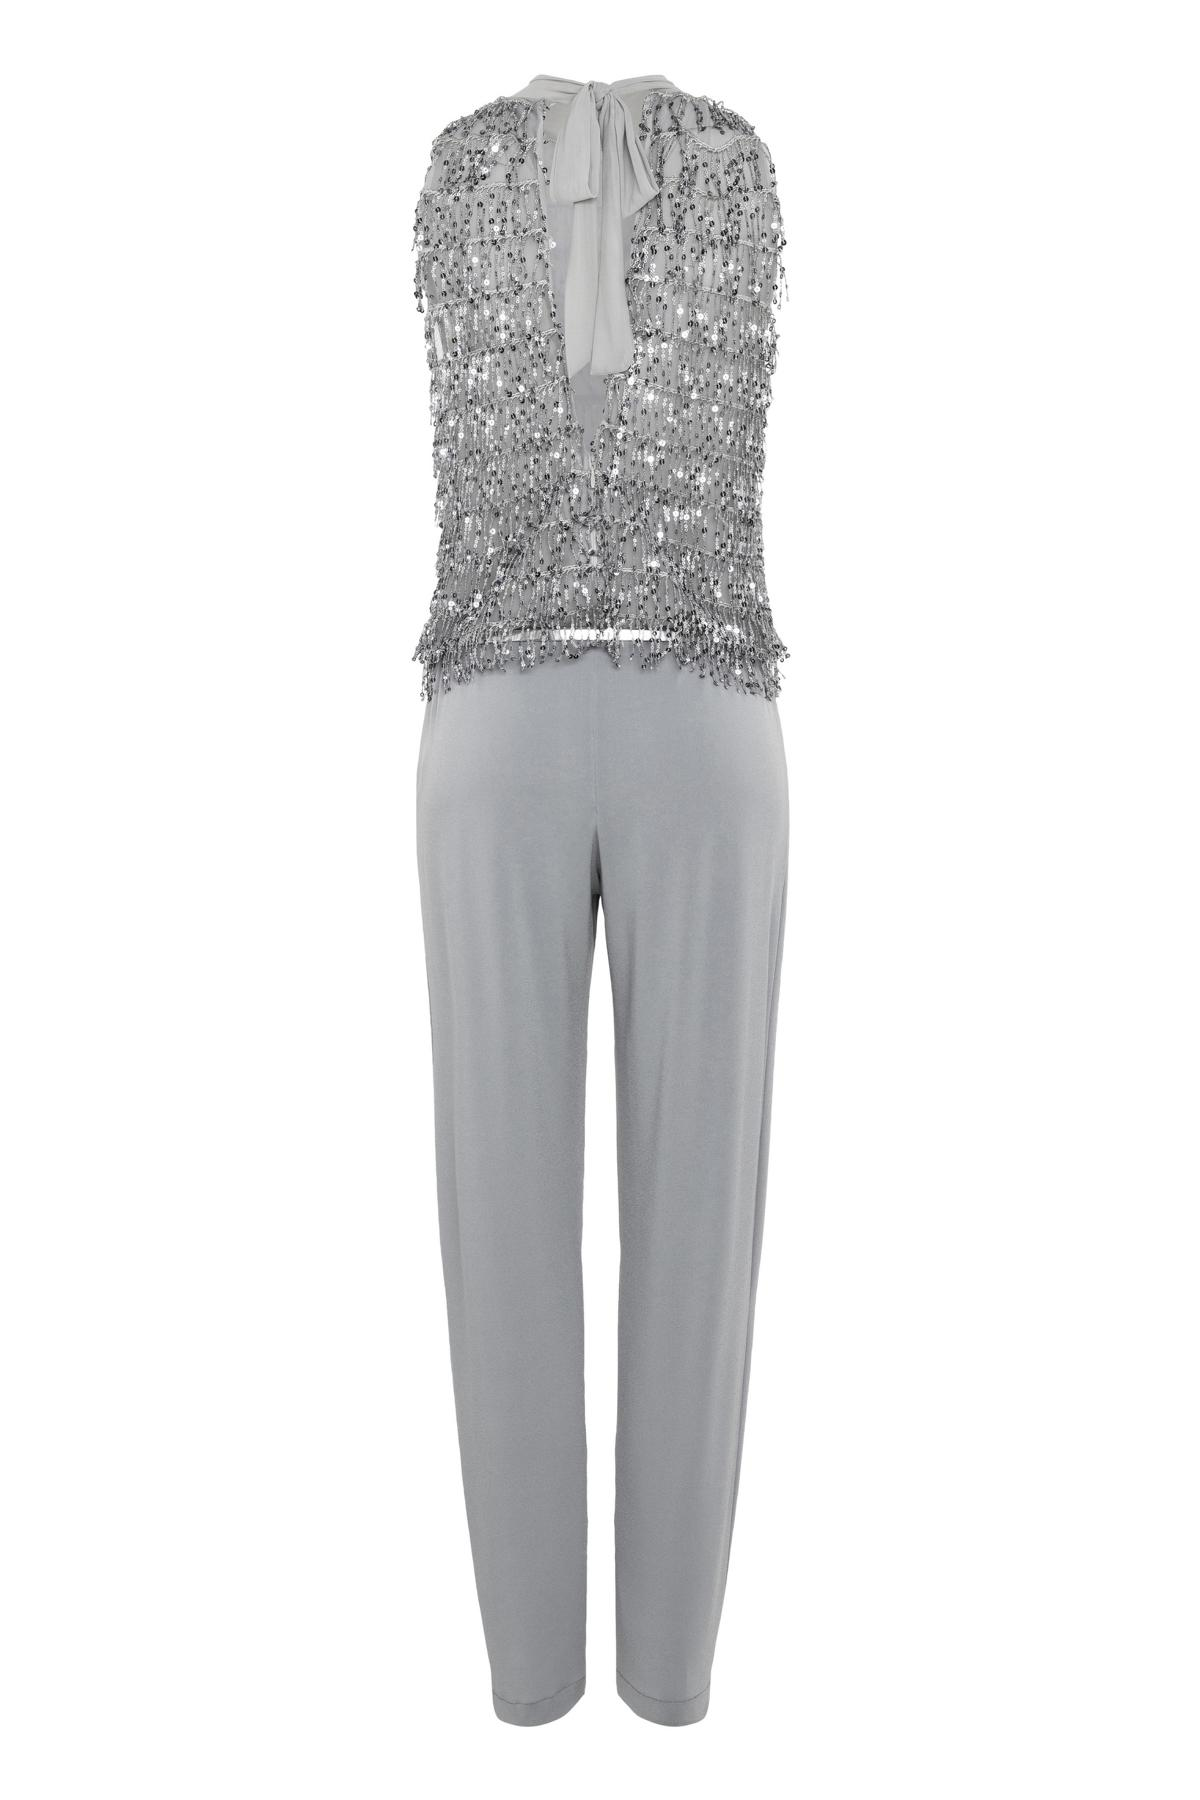 PRODUCT_PICTURE_PRE_7Ana Alcazar Jumpsuit Sacoly PRODUCT_PICTURE_SUF_7